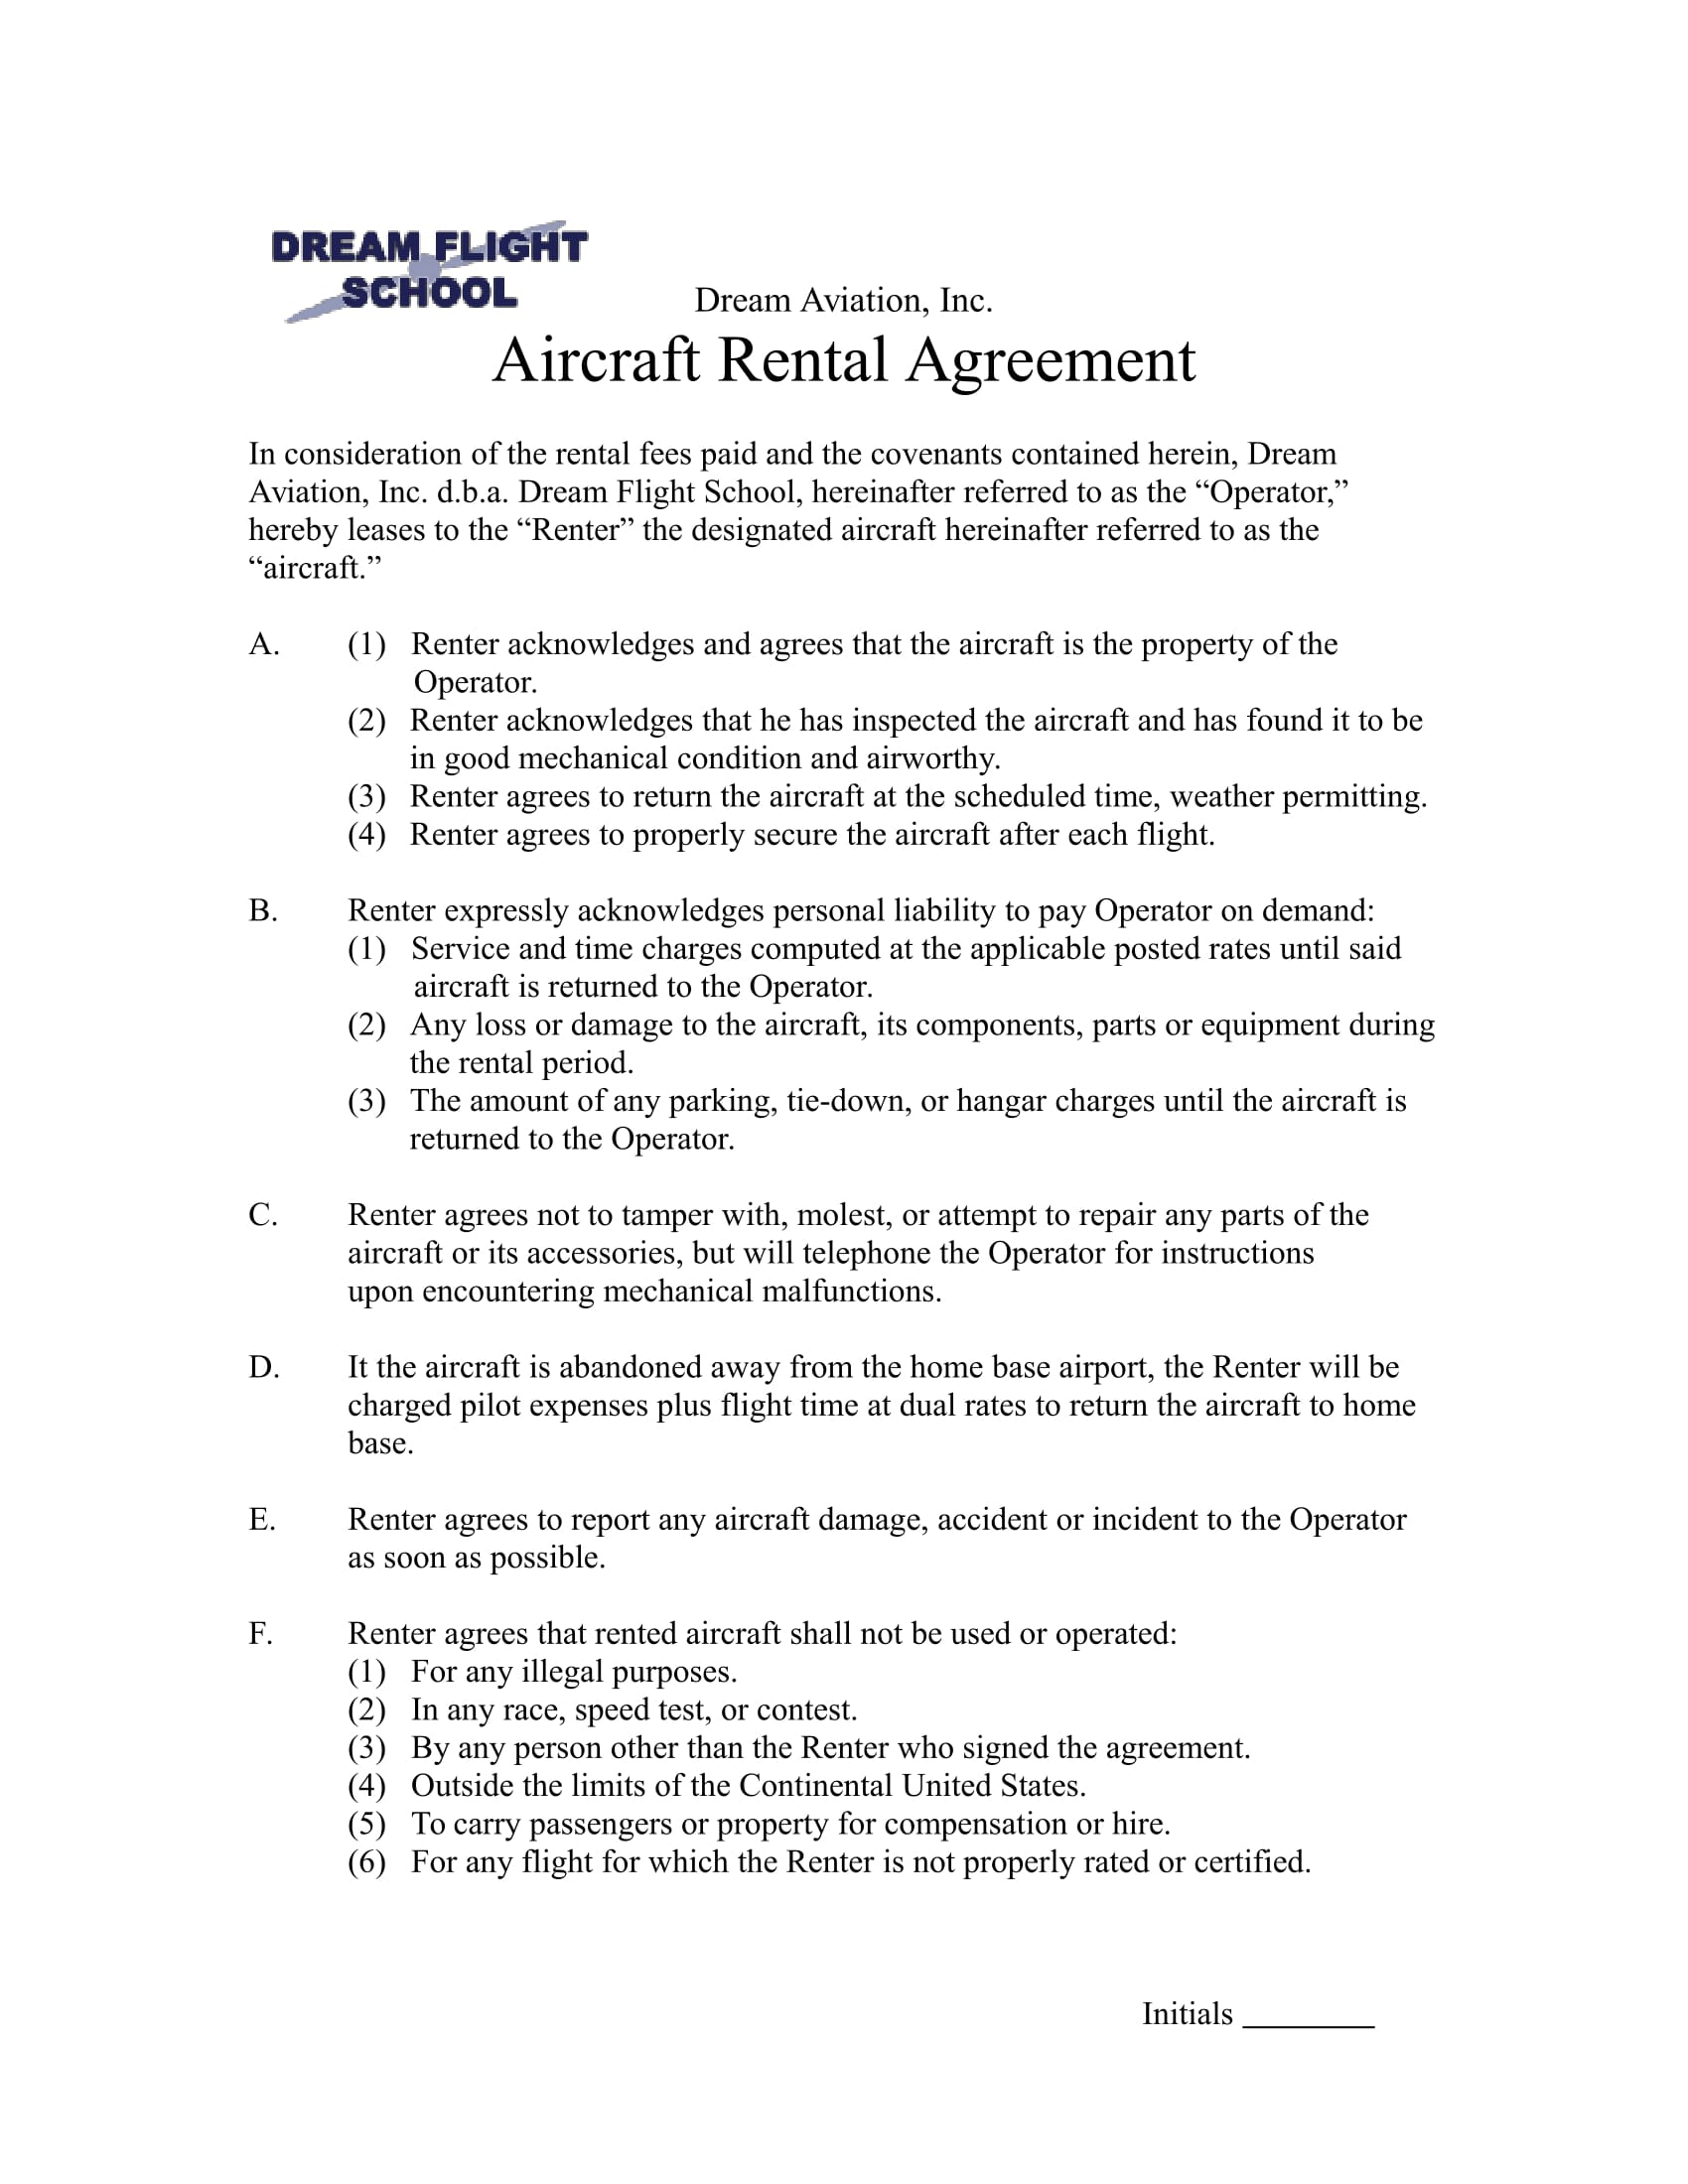 aircraft rental agreement example